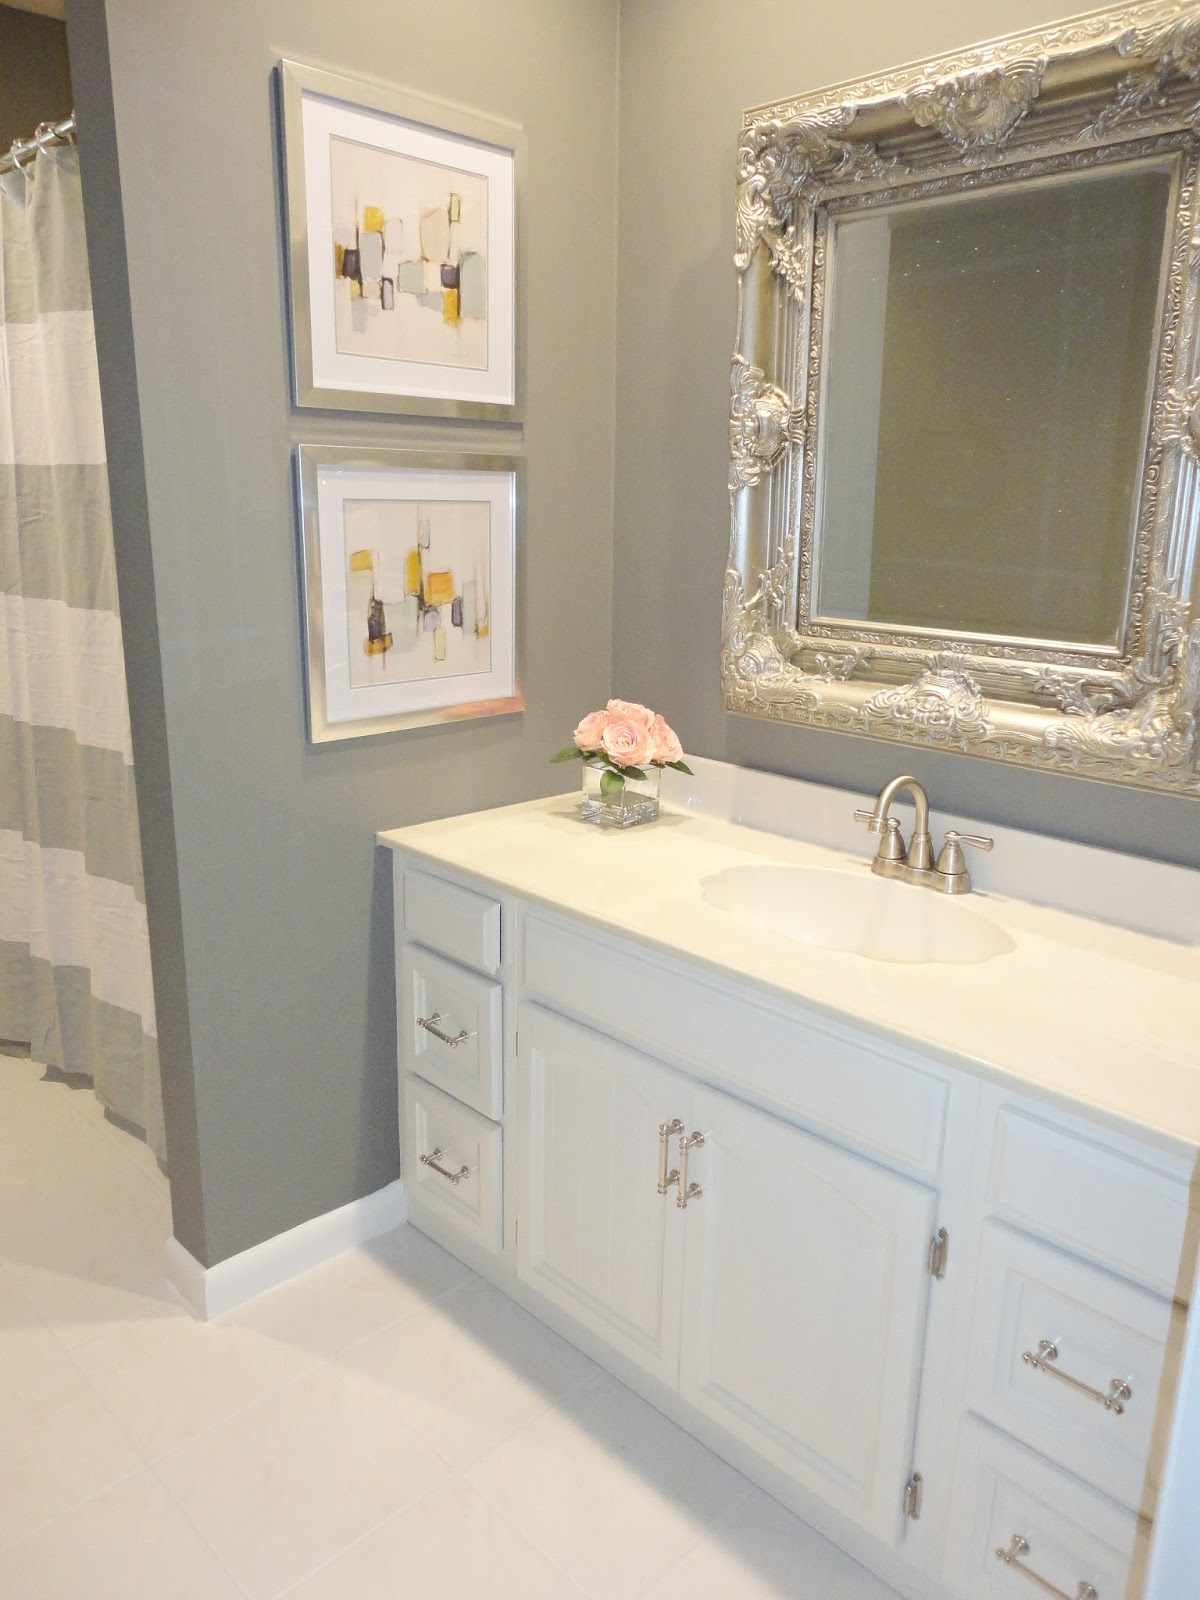 Livelovediy diy bathroom remodel on a budget for Bathroom remodel planner